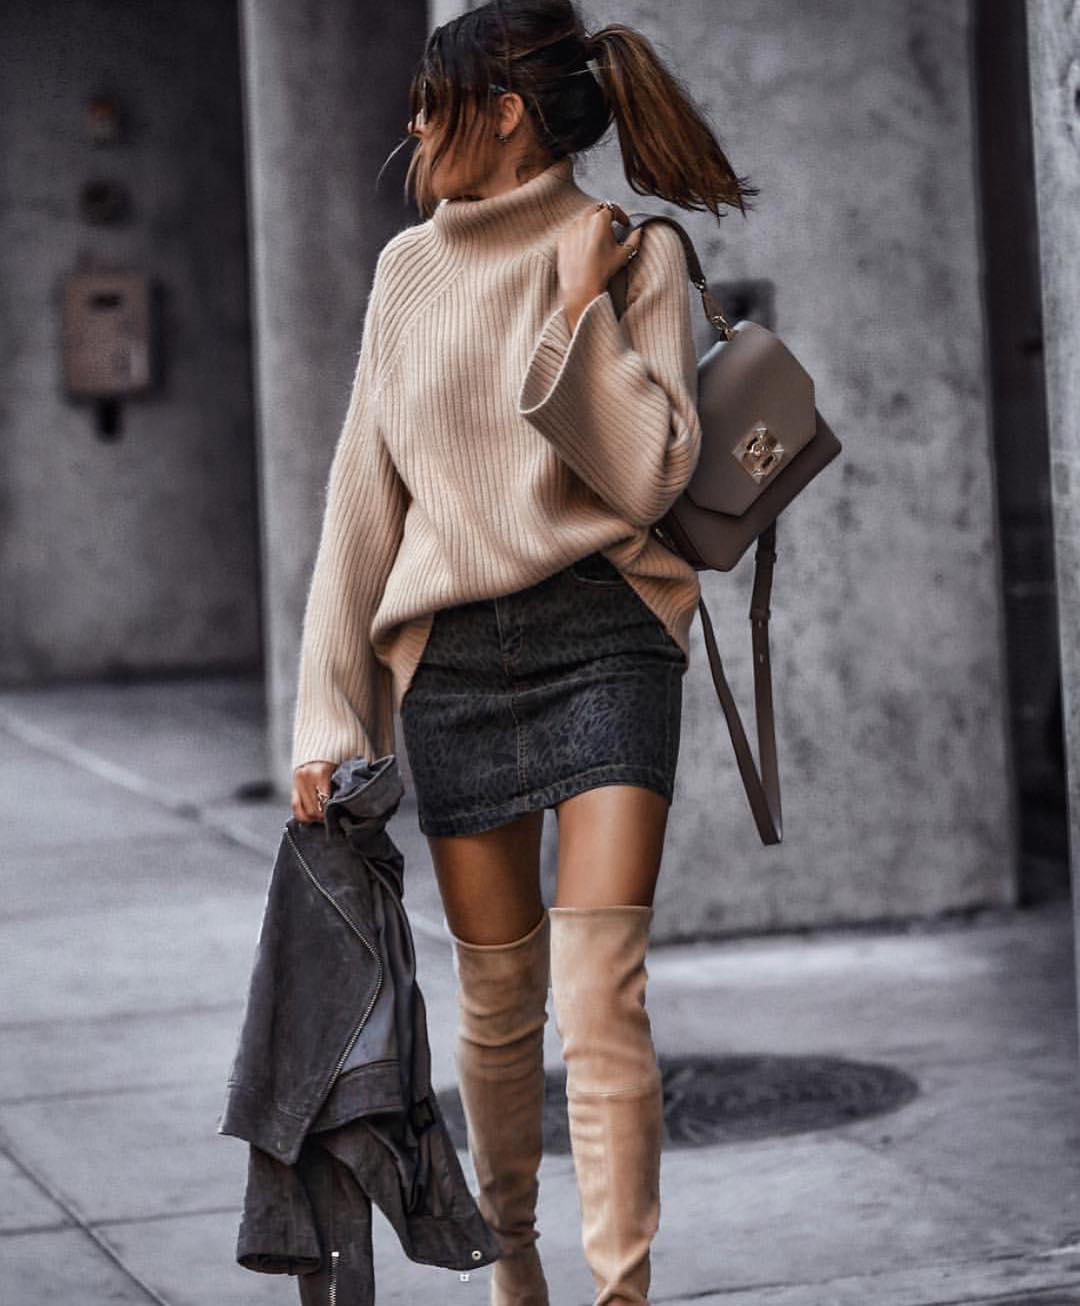 Sophisticated Casual Look For Autumn: Slouchy Sweater And Leopard Print Denim Skirt 2020